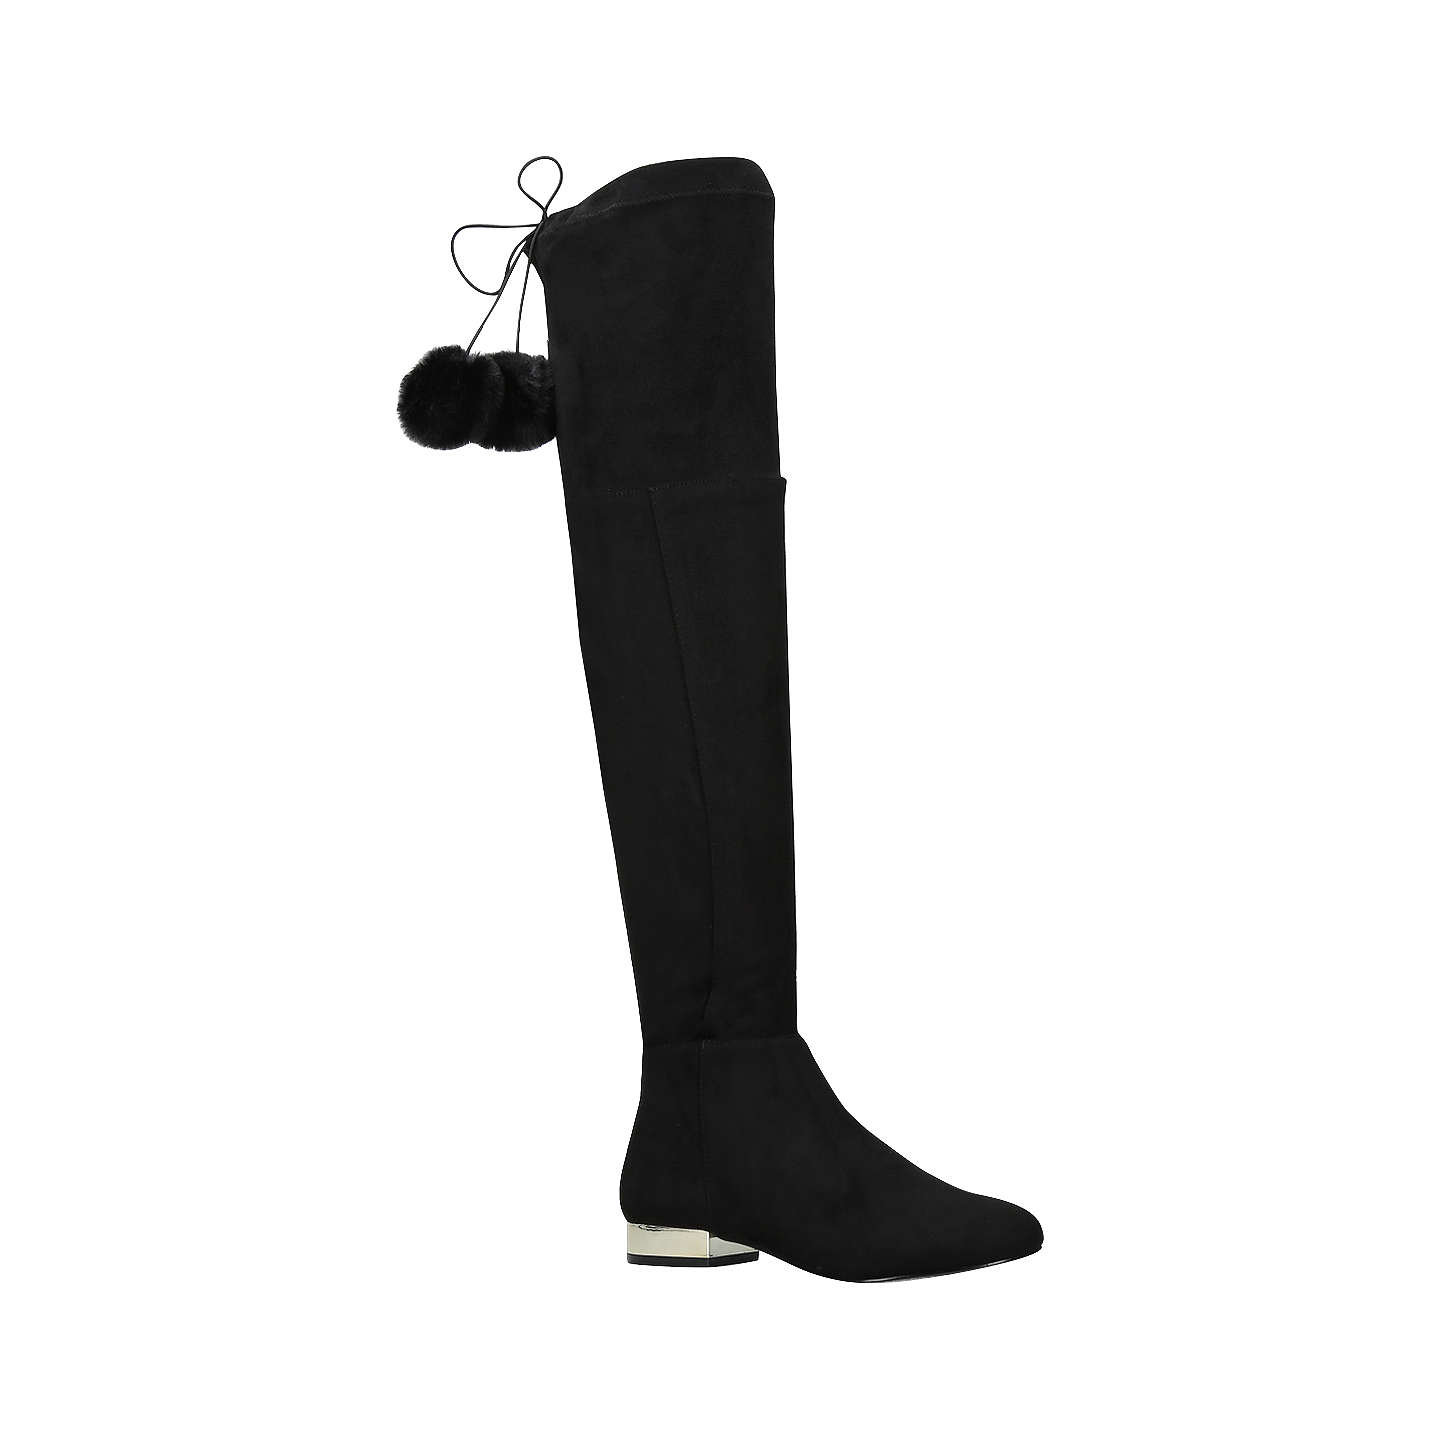 BuyMiss KG Vicky Over the Knee Boots, Black, 3 Online at johnlewis.com